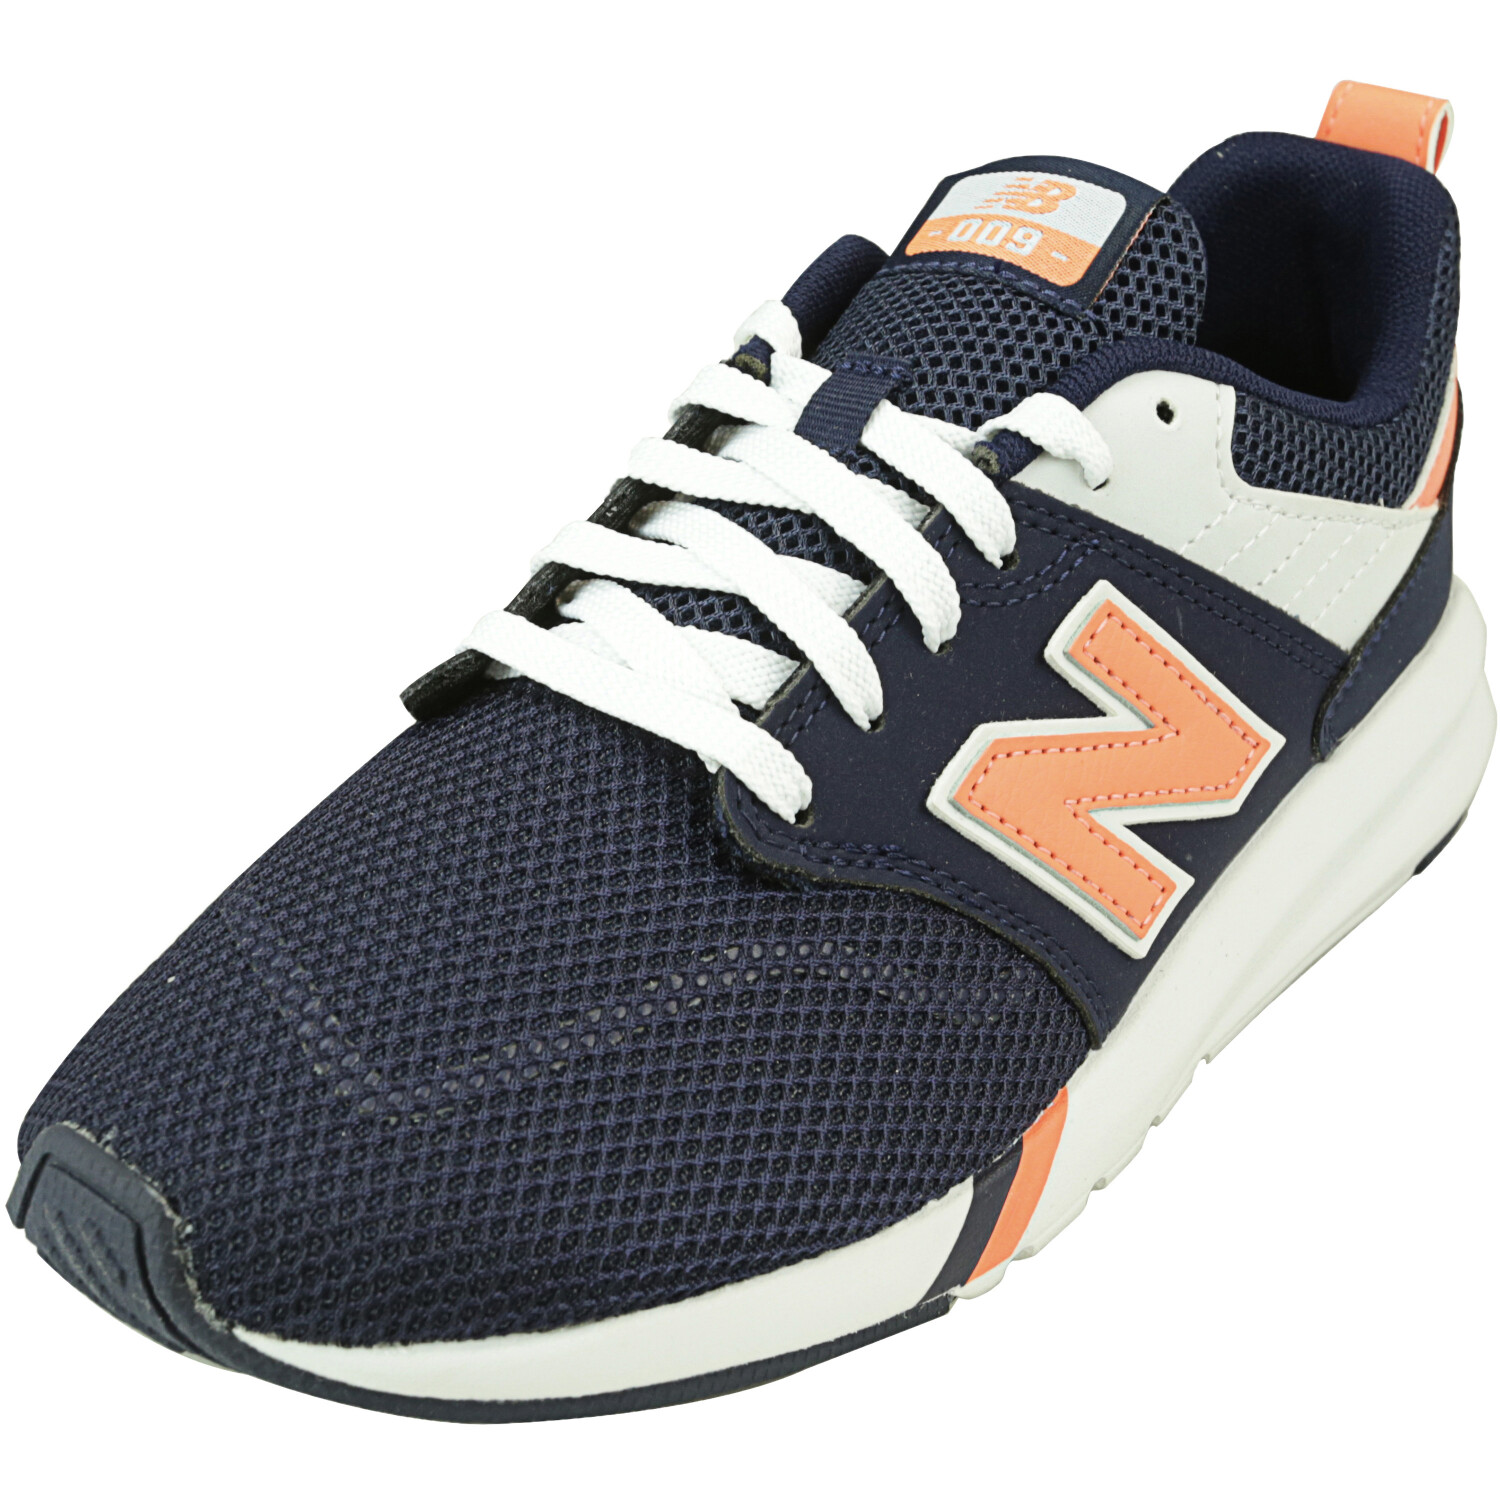 New Balance Men's Ms009 Mn1 Low Top Mesh Tenni - 7WW